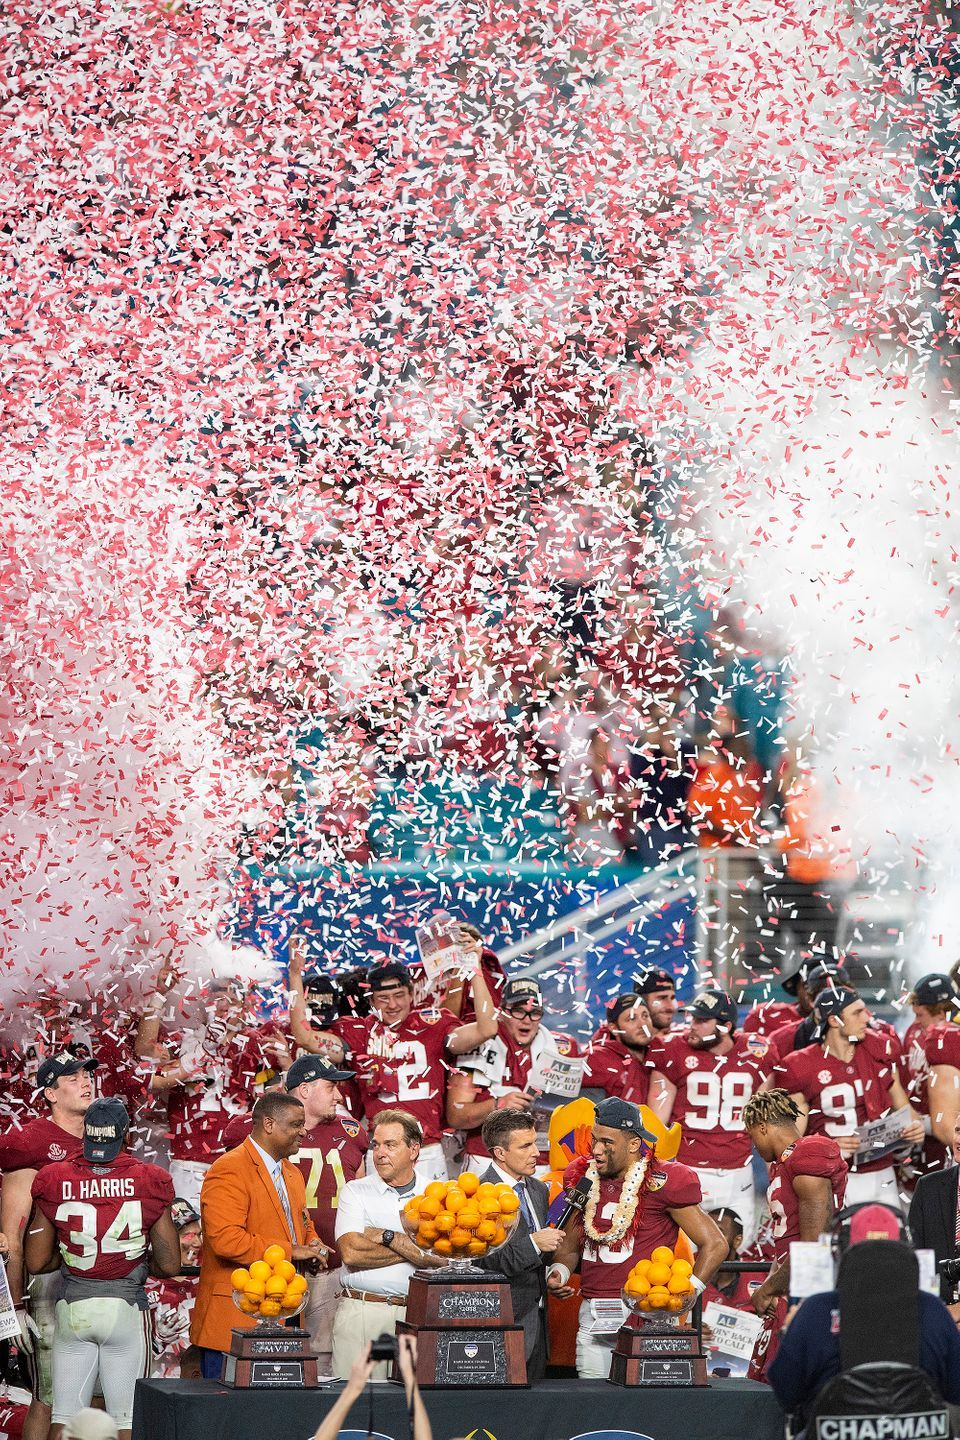 Alabama haters beware: The best may be yet to come